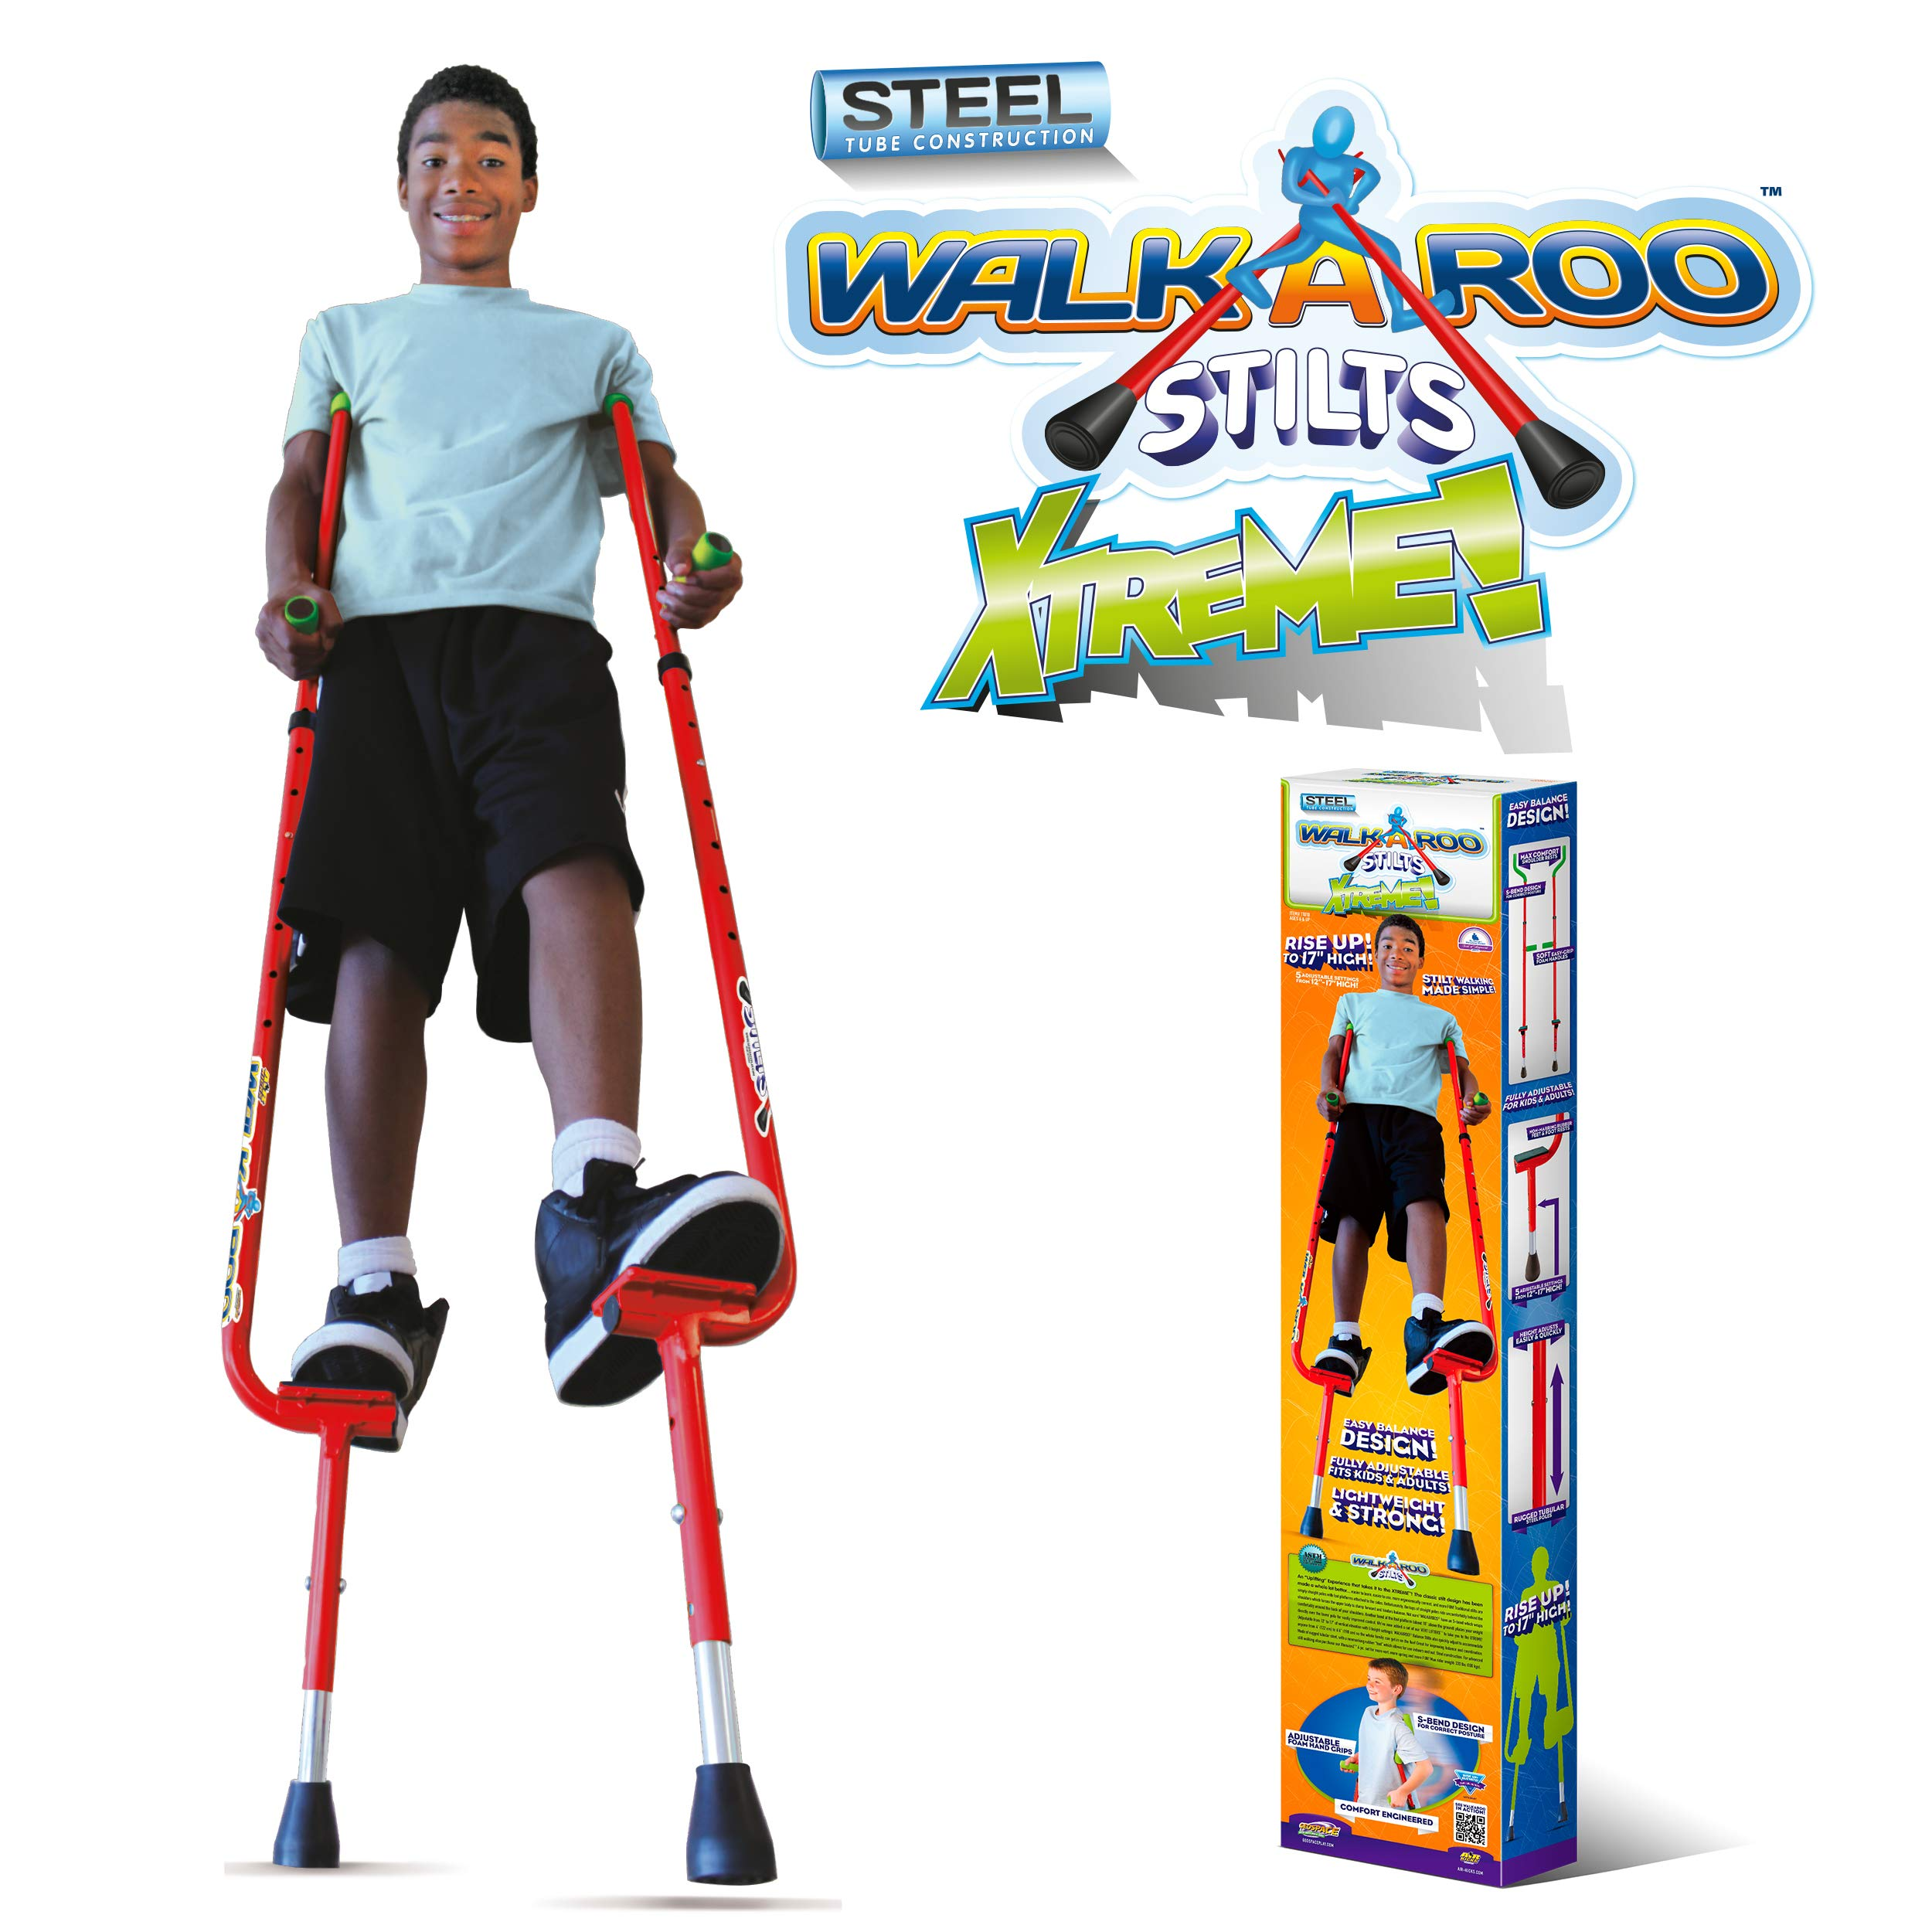 Geospace Original Walkaroo Xtreme Steel Balance Stilts with Height Adjustable Vert Lifters by Air Kicks (red) by Geospace